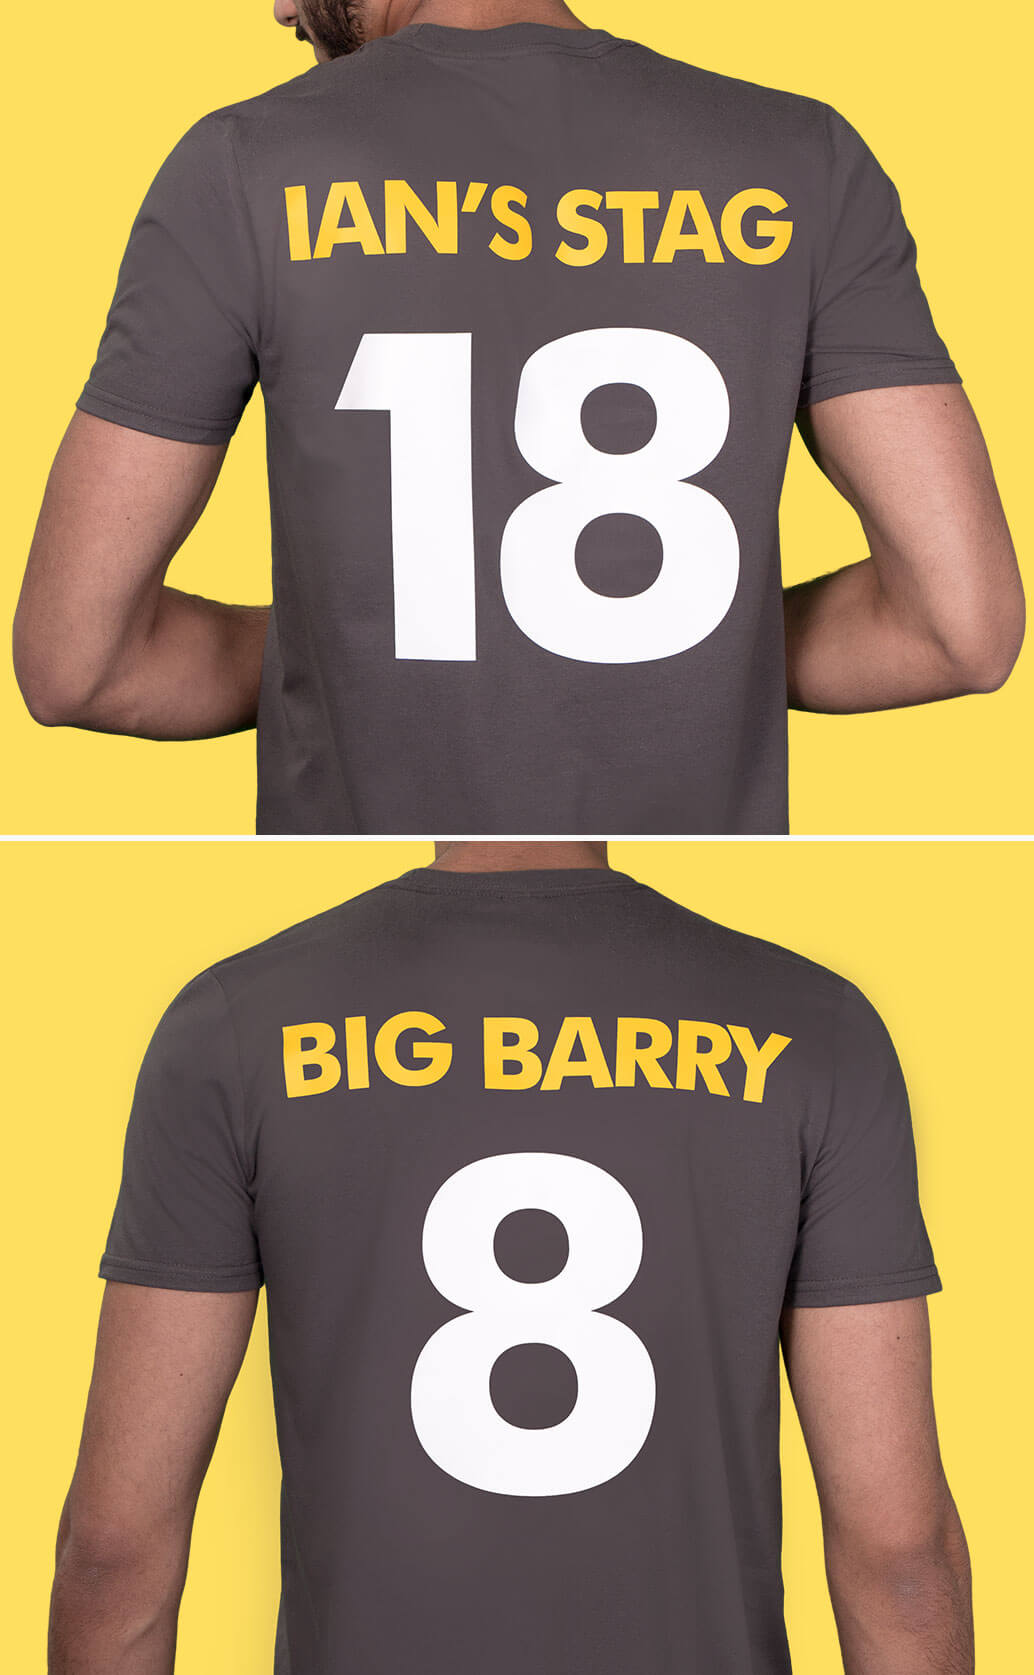 Two medium close-up shots of models wearing charcoal style fit t-shirts. Photographed from behind to show back name in yellow and back number in white print. First shot reads 'Ian's Stag 18', second shot has 'Big Barry 8'. Yellow background